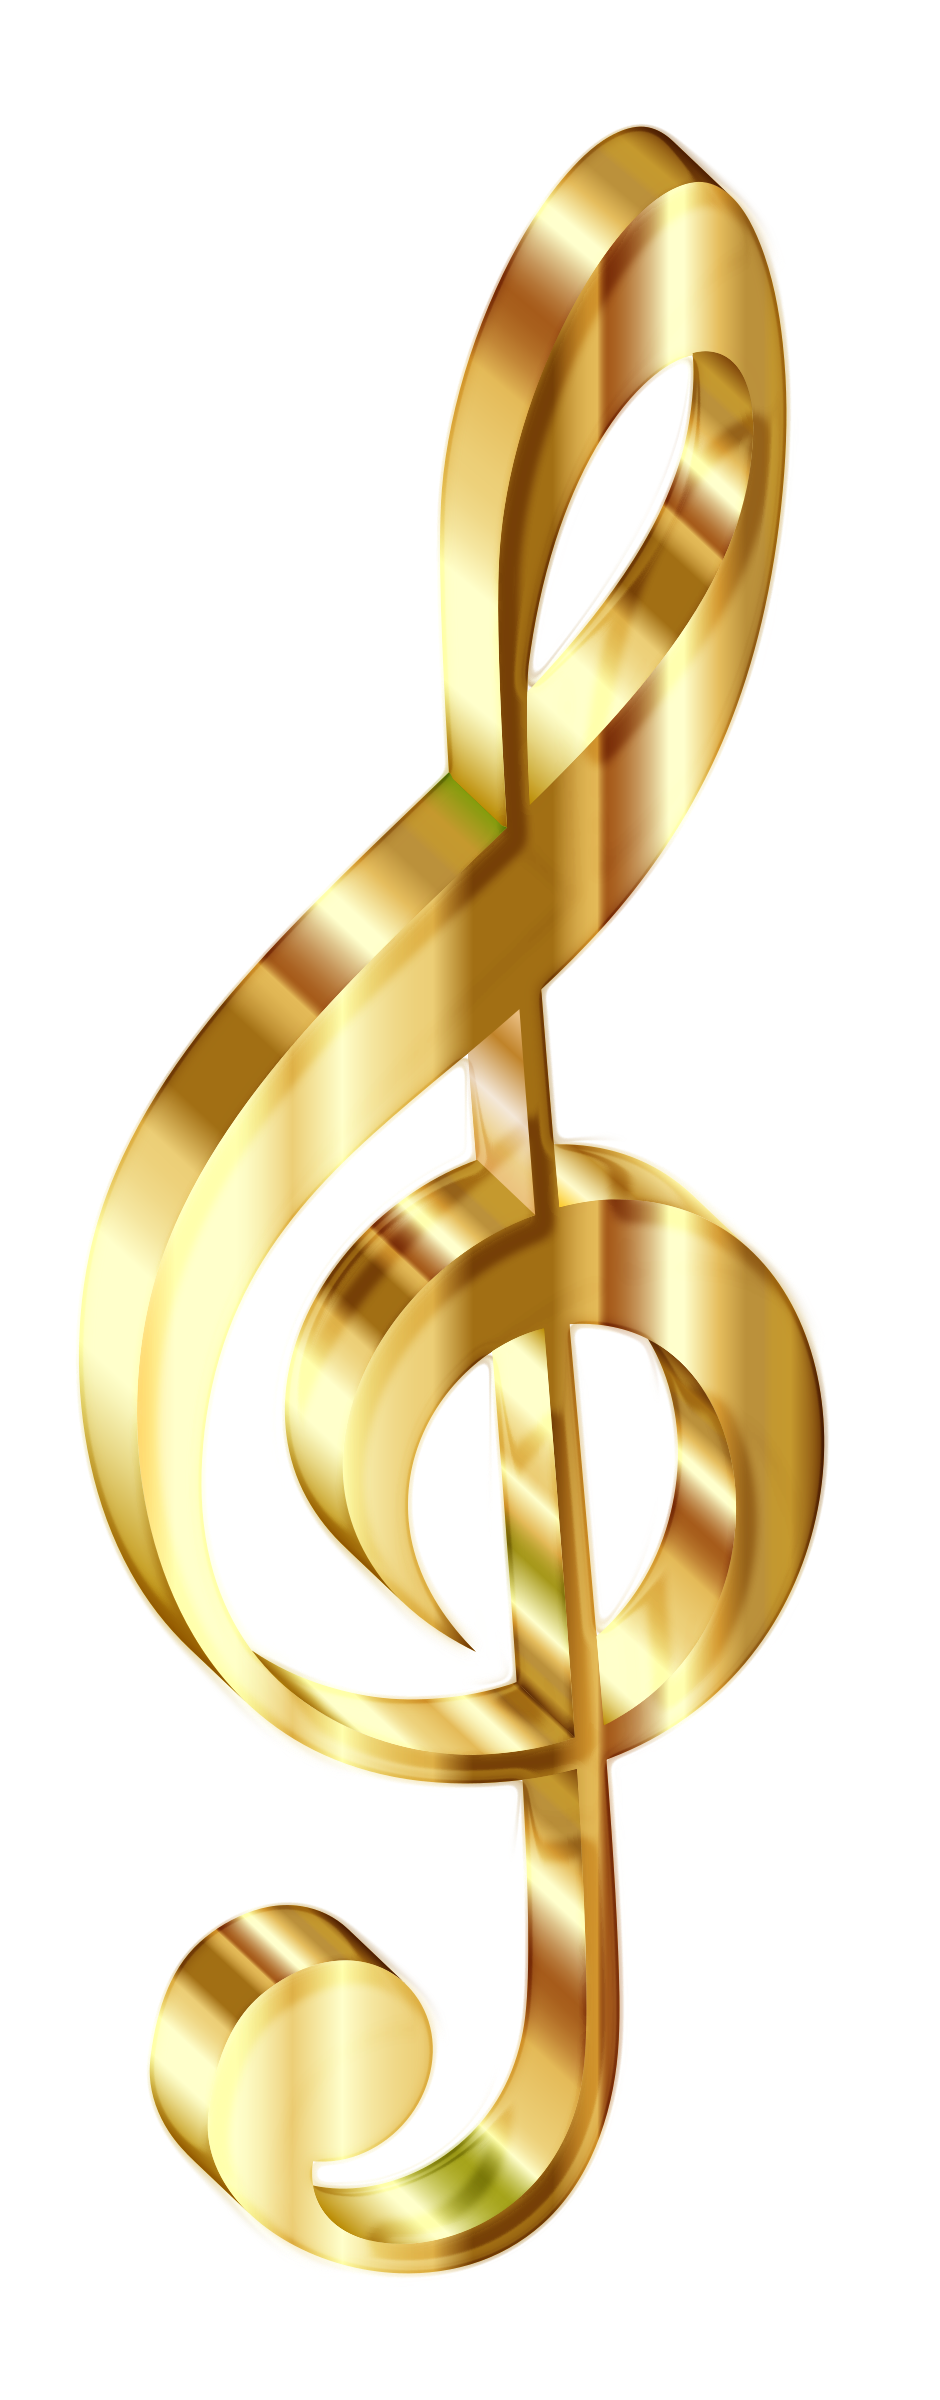 Music notes gold png. Clipart d clef enhanced